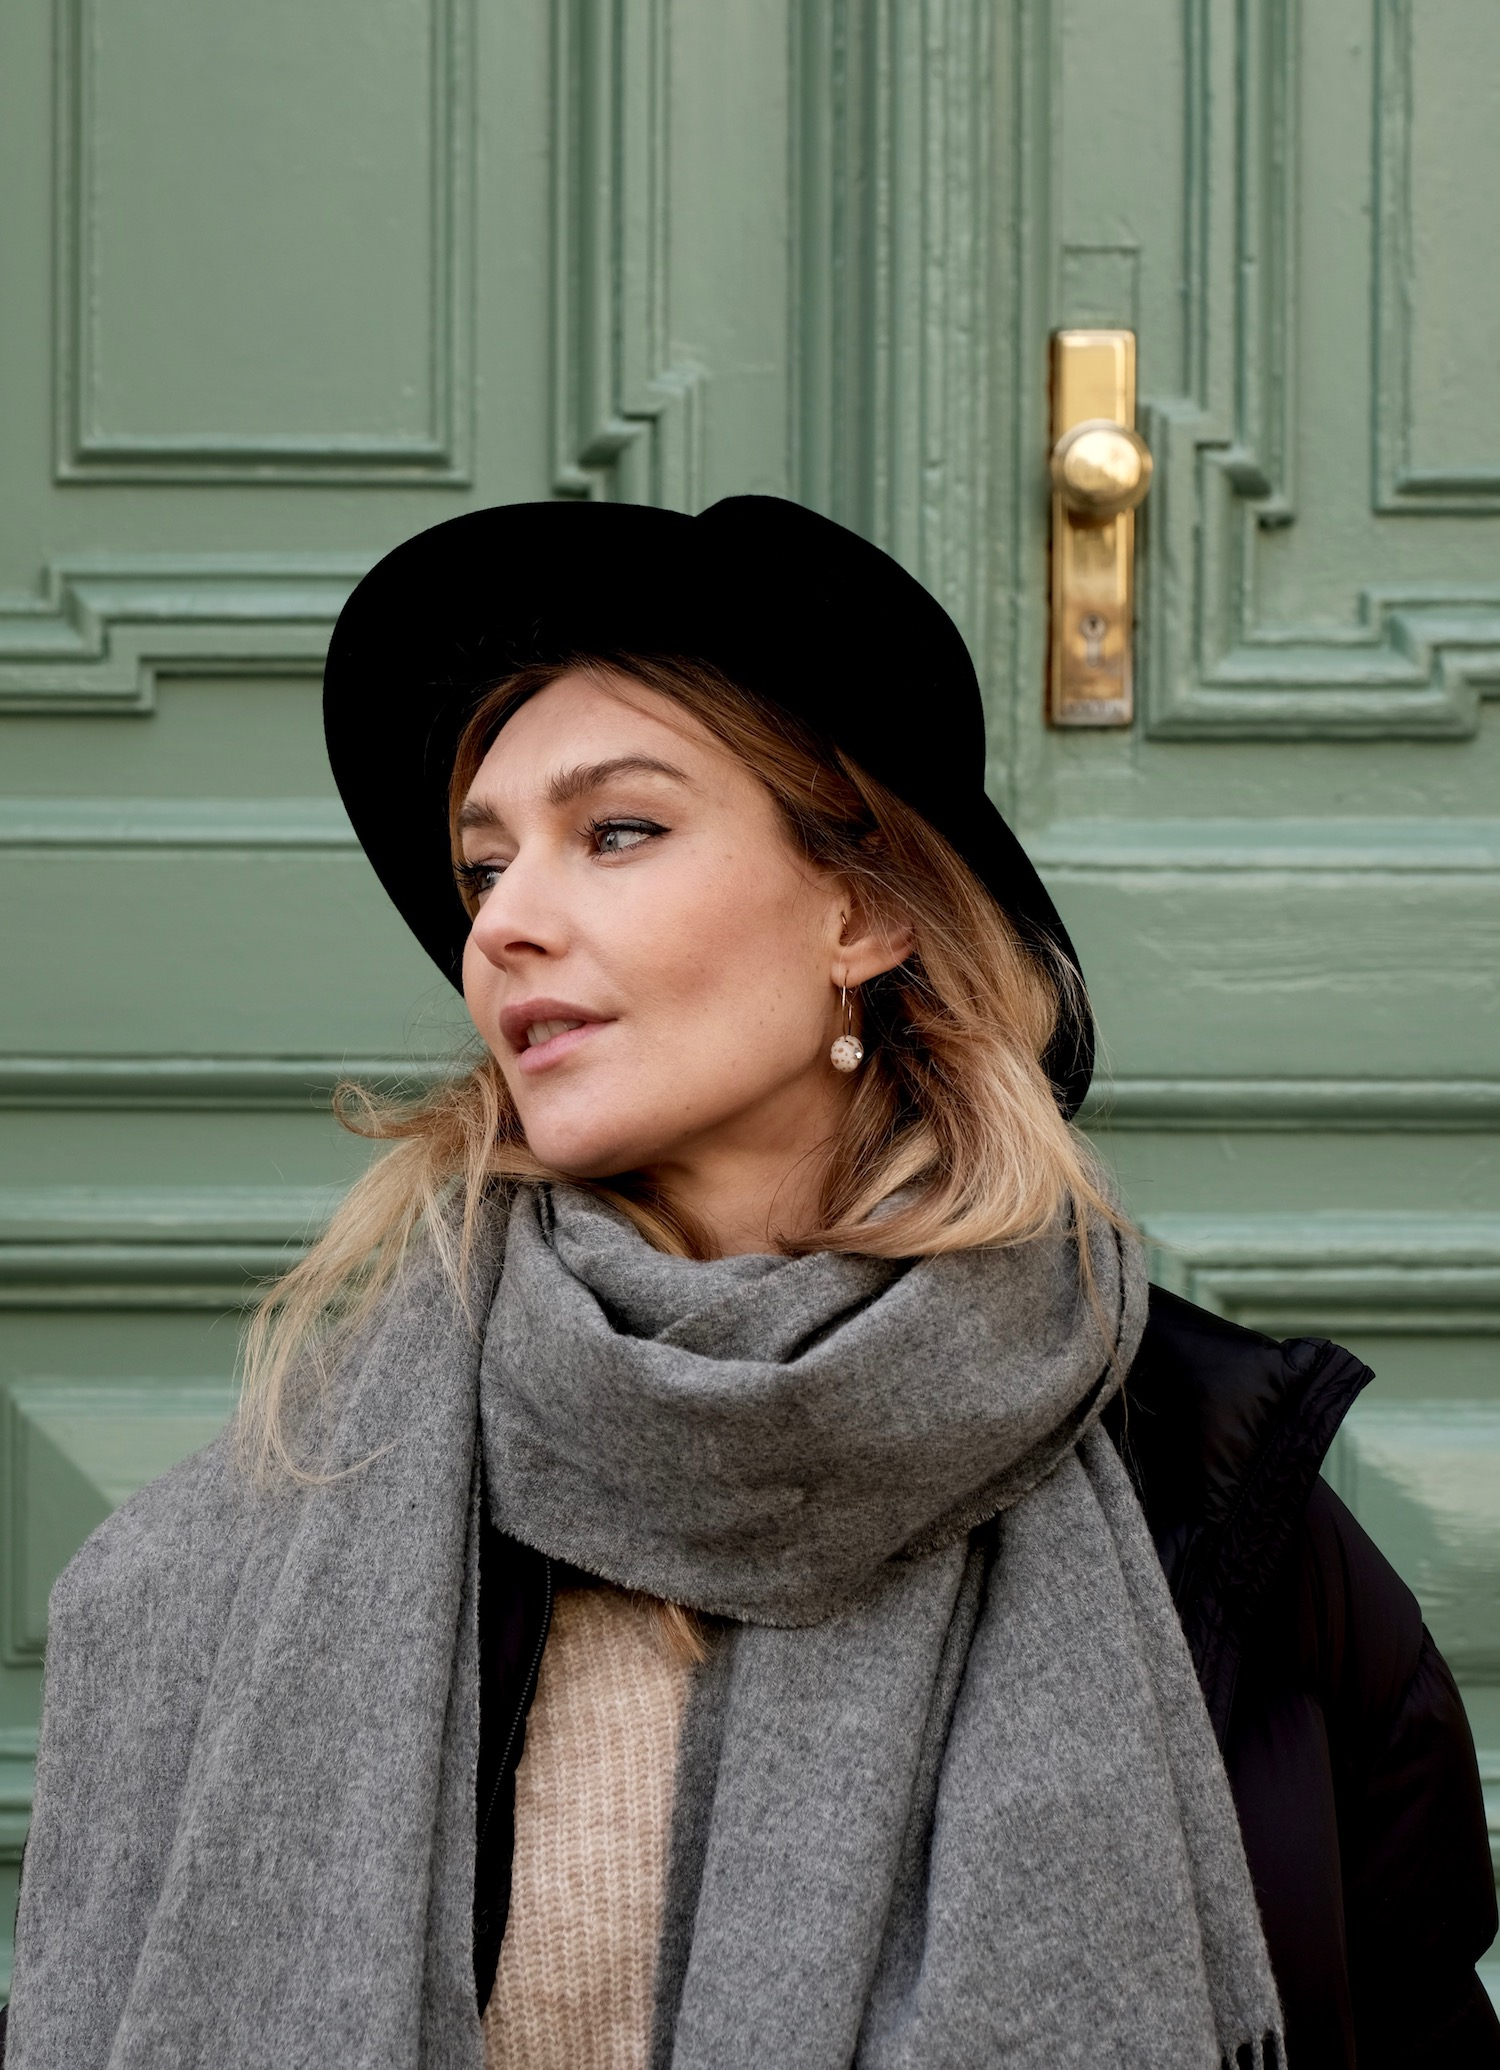 Beautyblog Beautyblogger BARE MINDS Elina Neumann how to winter outfit mit hut